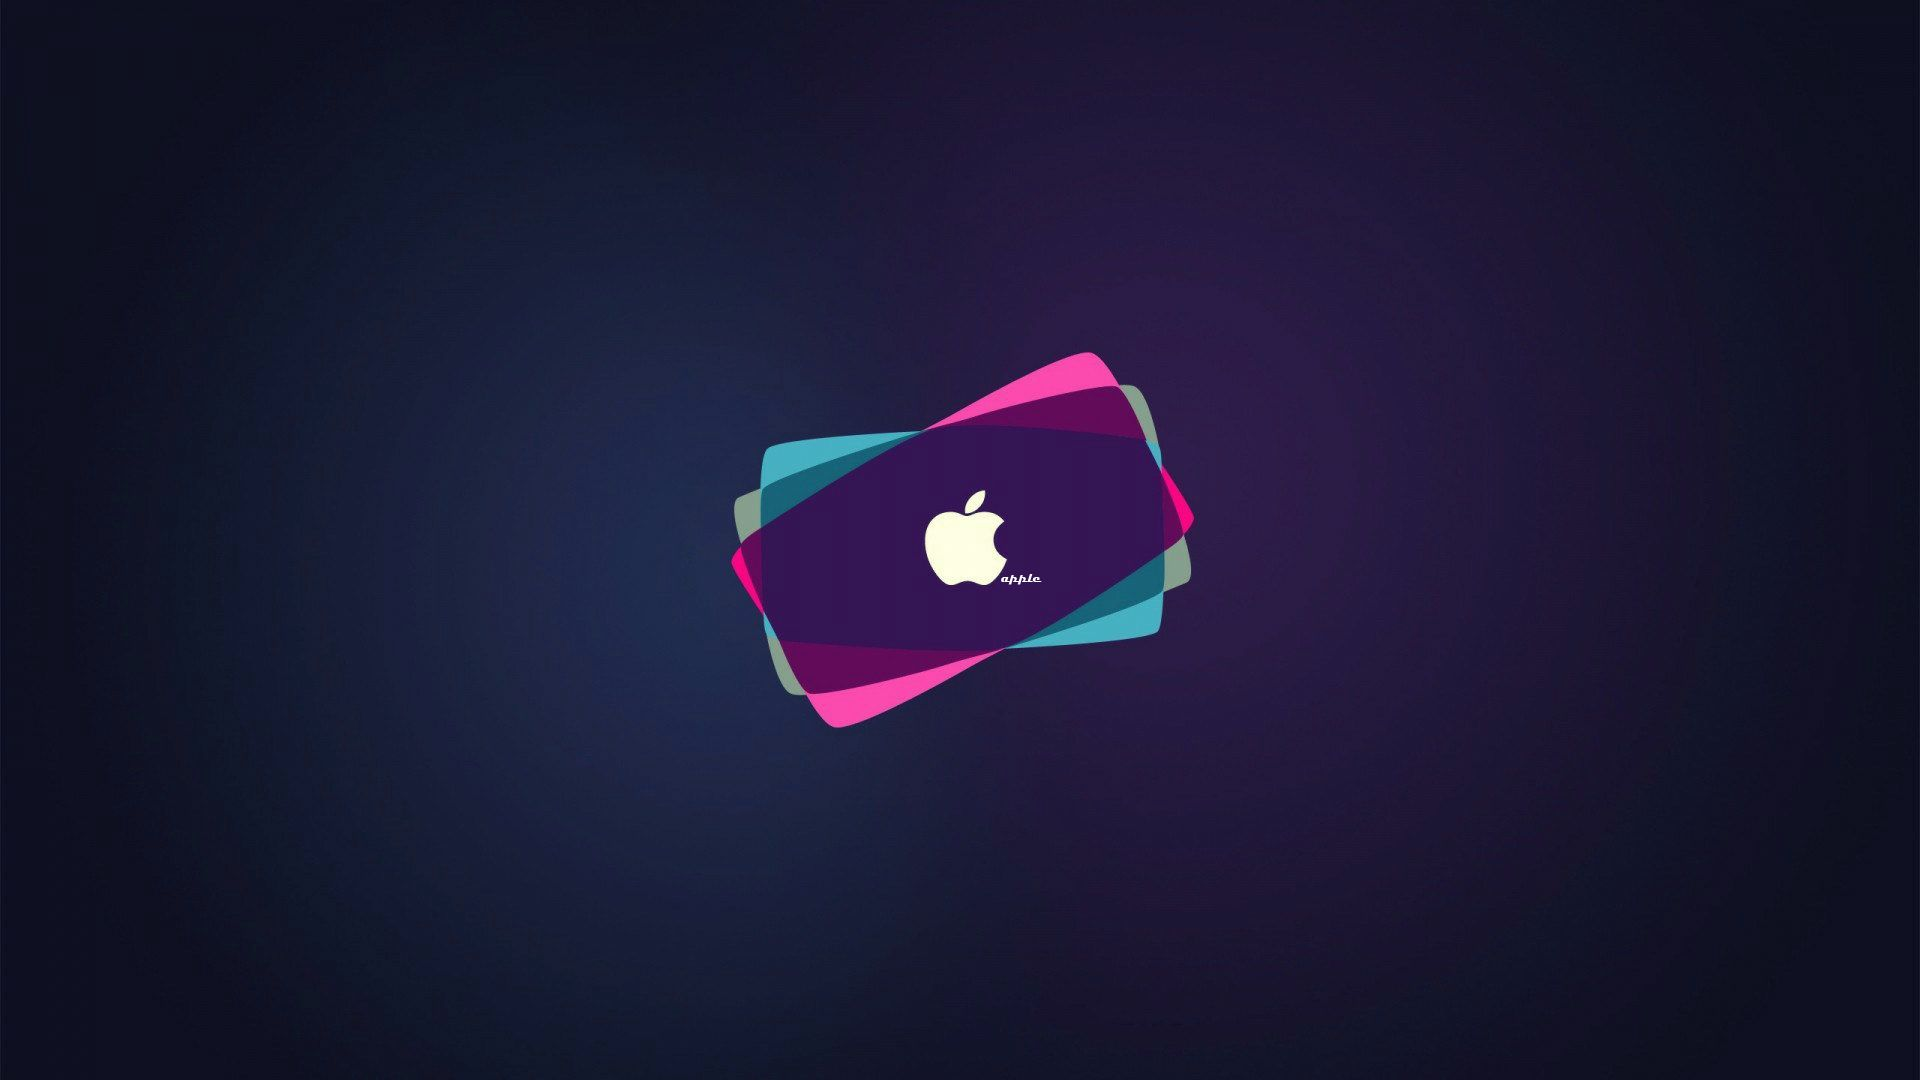 HD Mac Os X Backgrounds Wallpapercraft 1920x1080